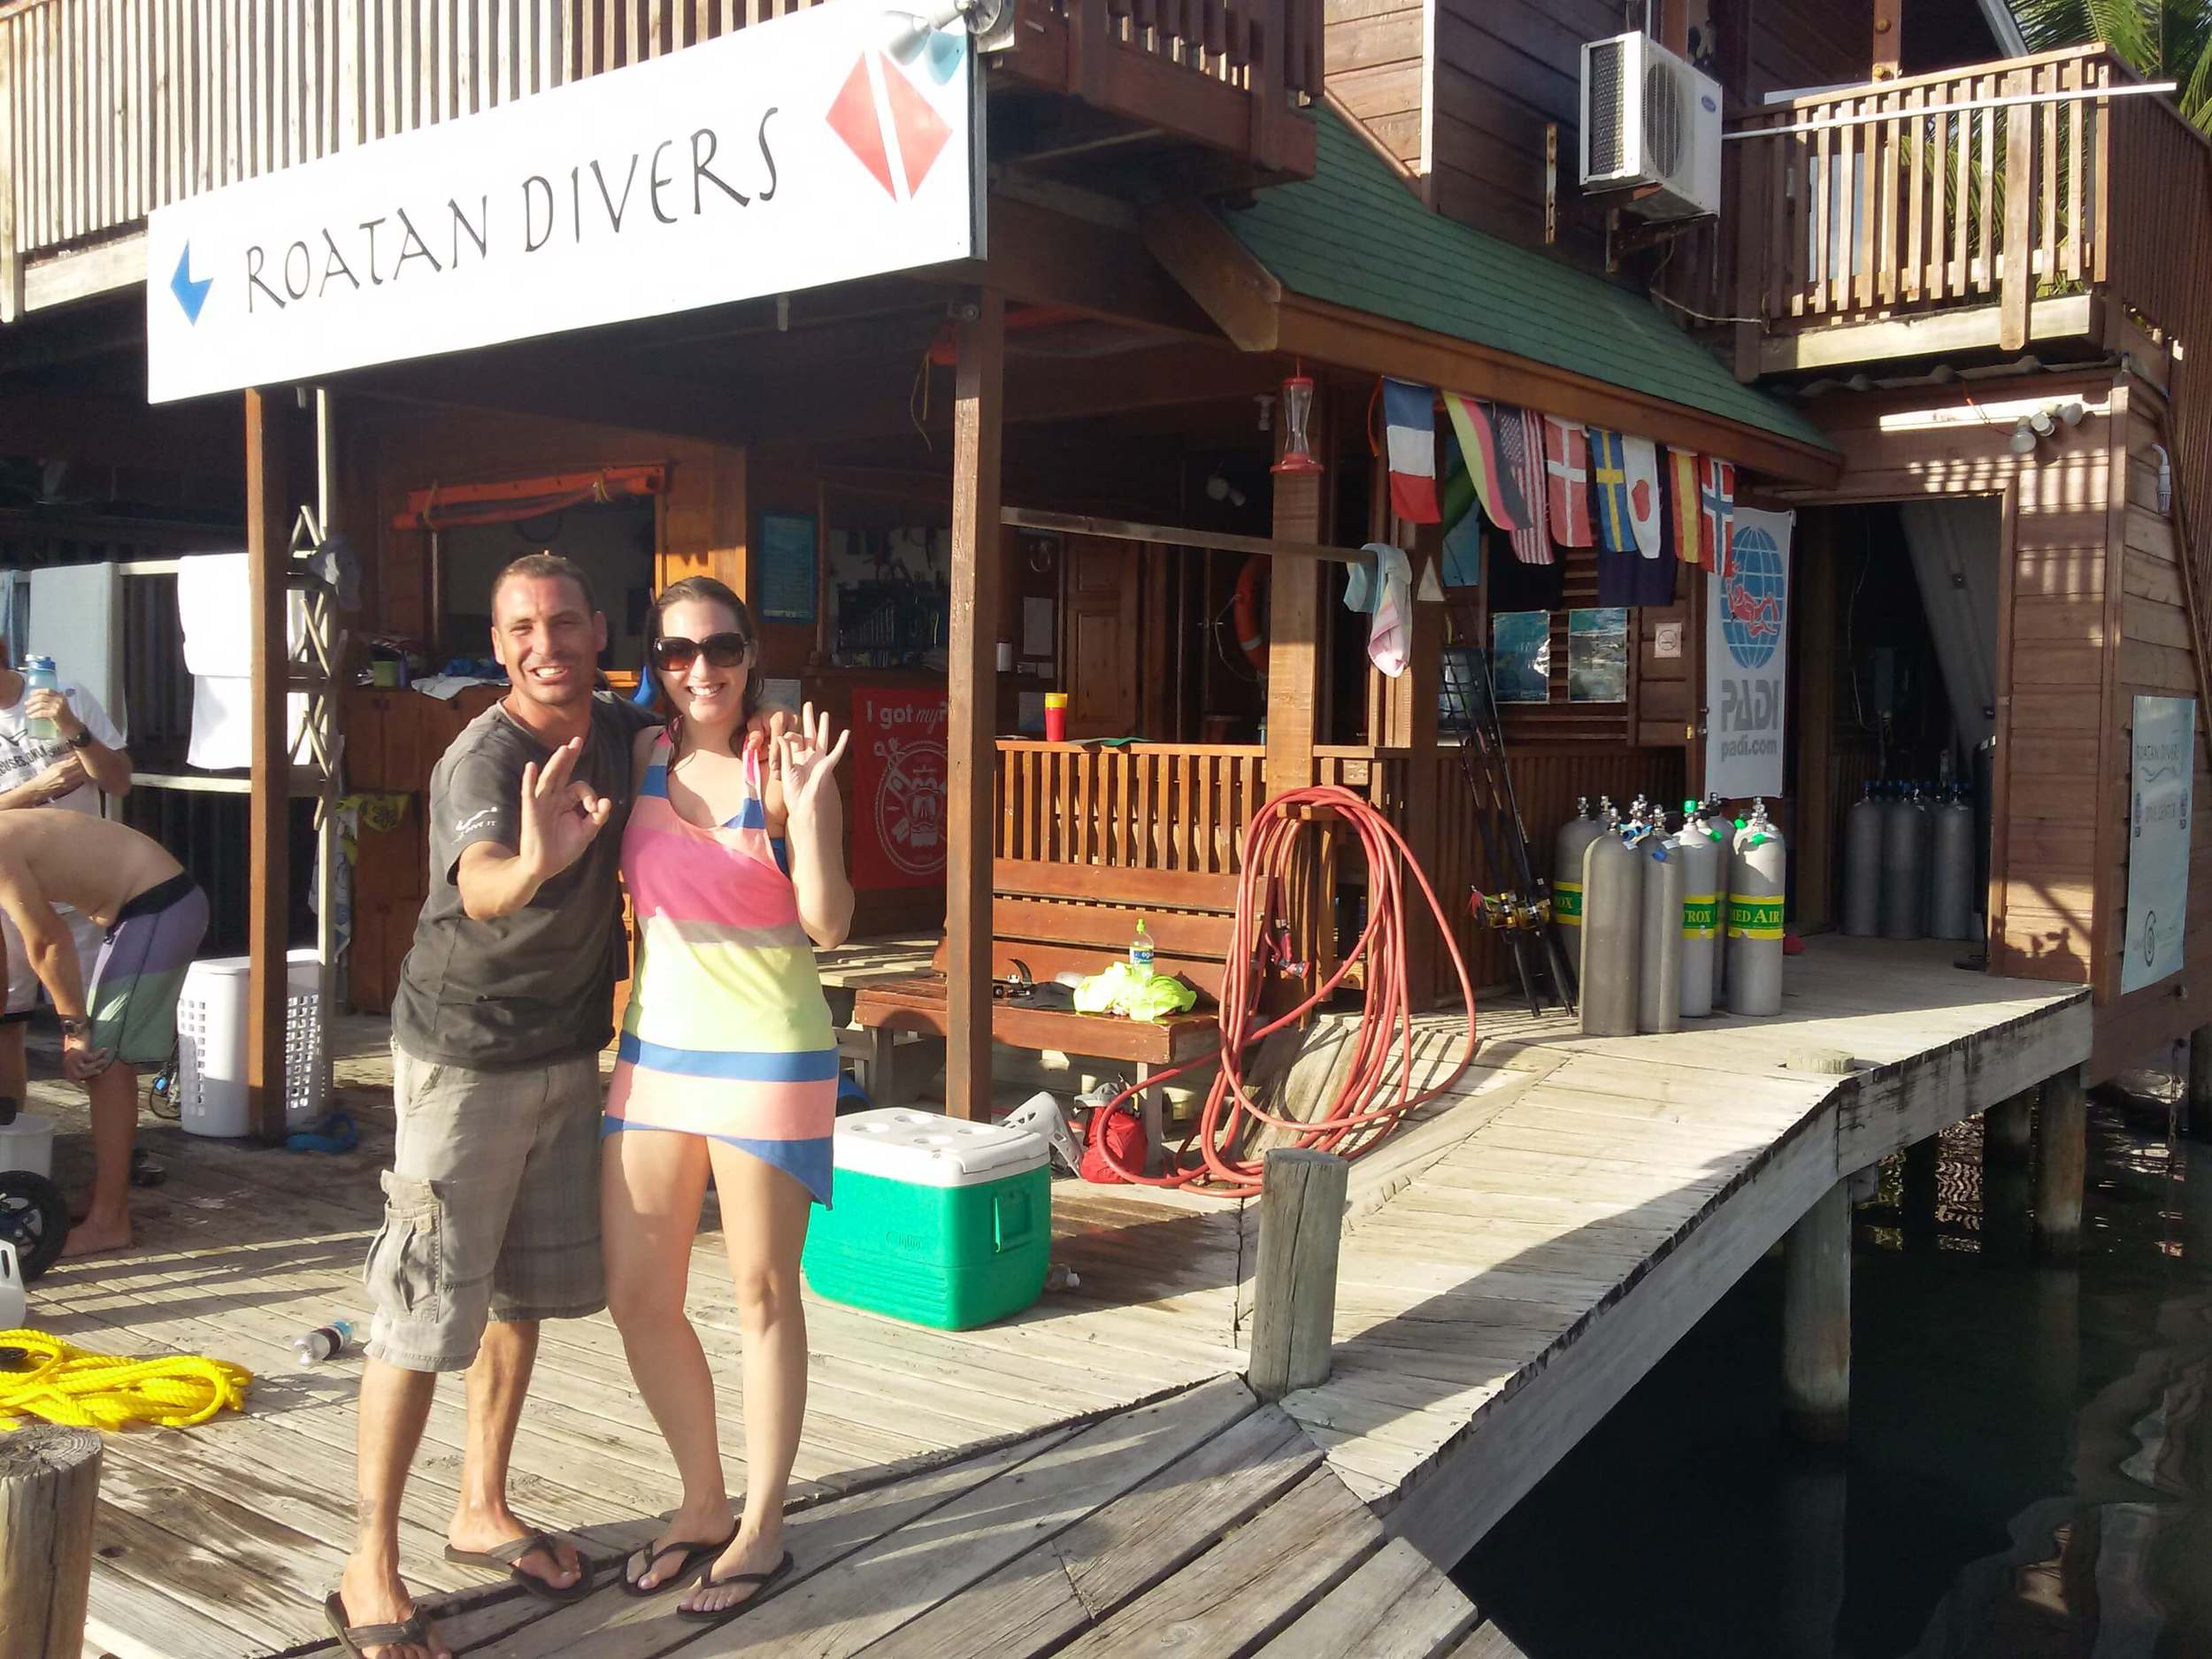 Marion completed her PADI Advanced Open Water Diver upgrade with Roatan Divers